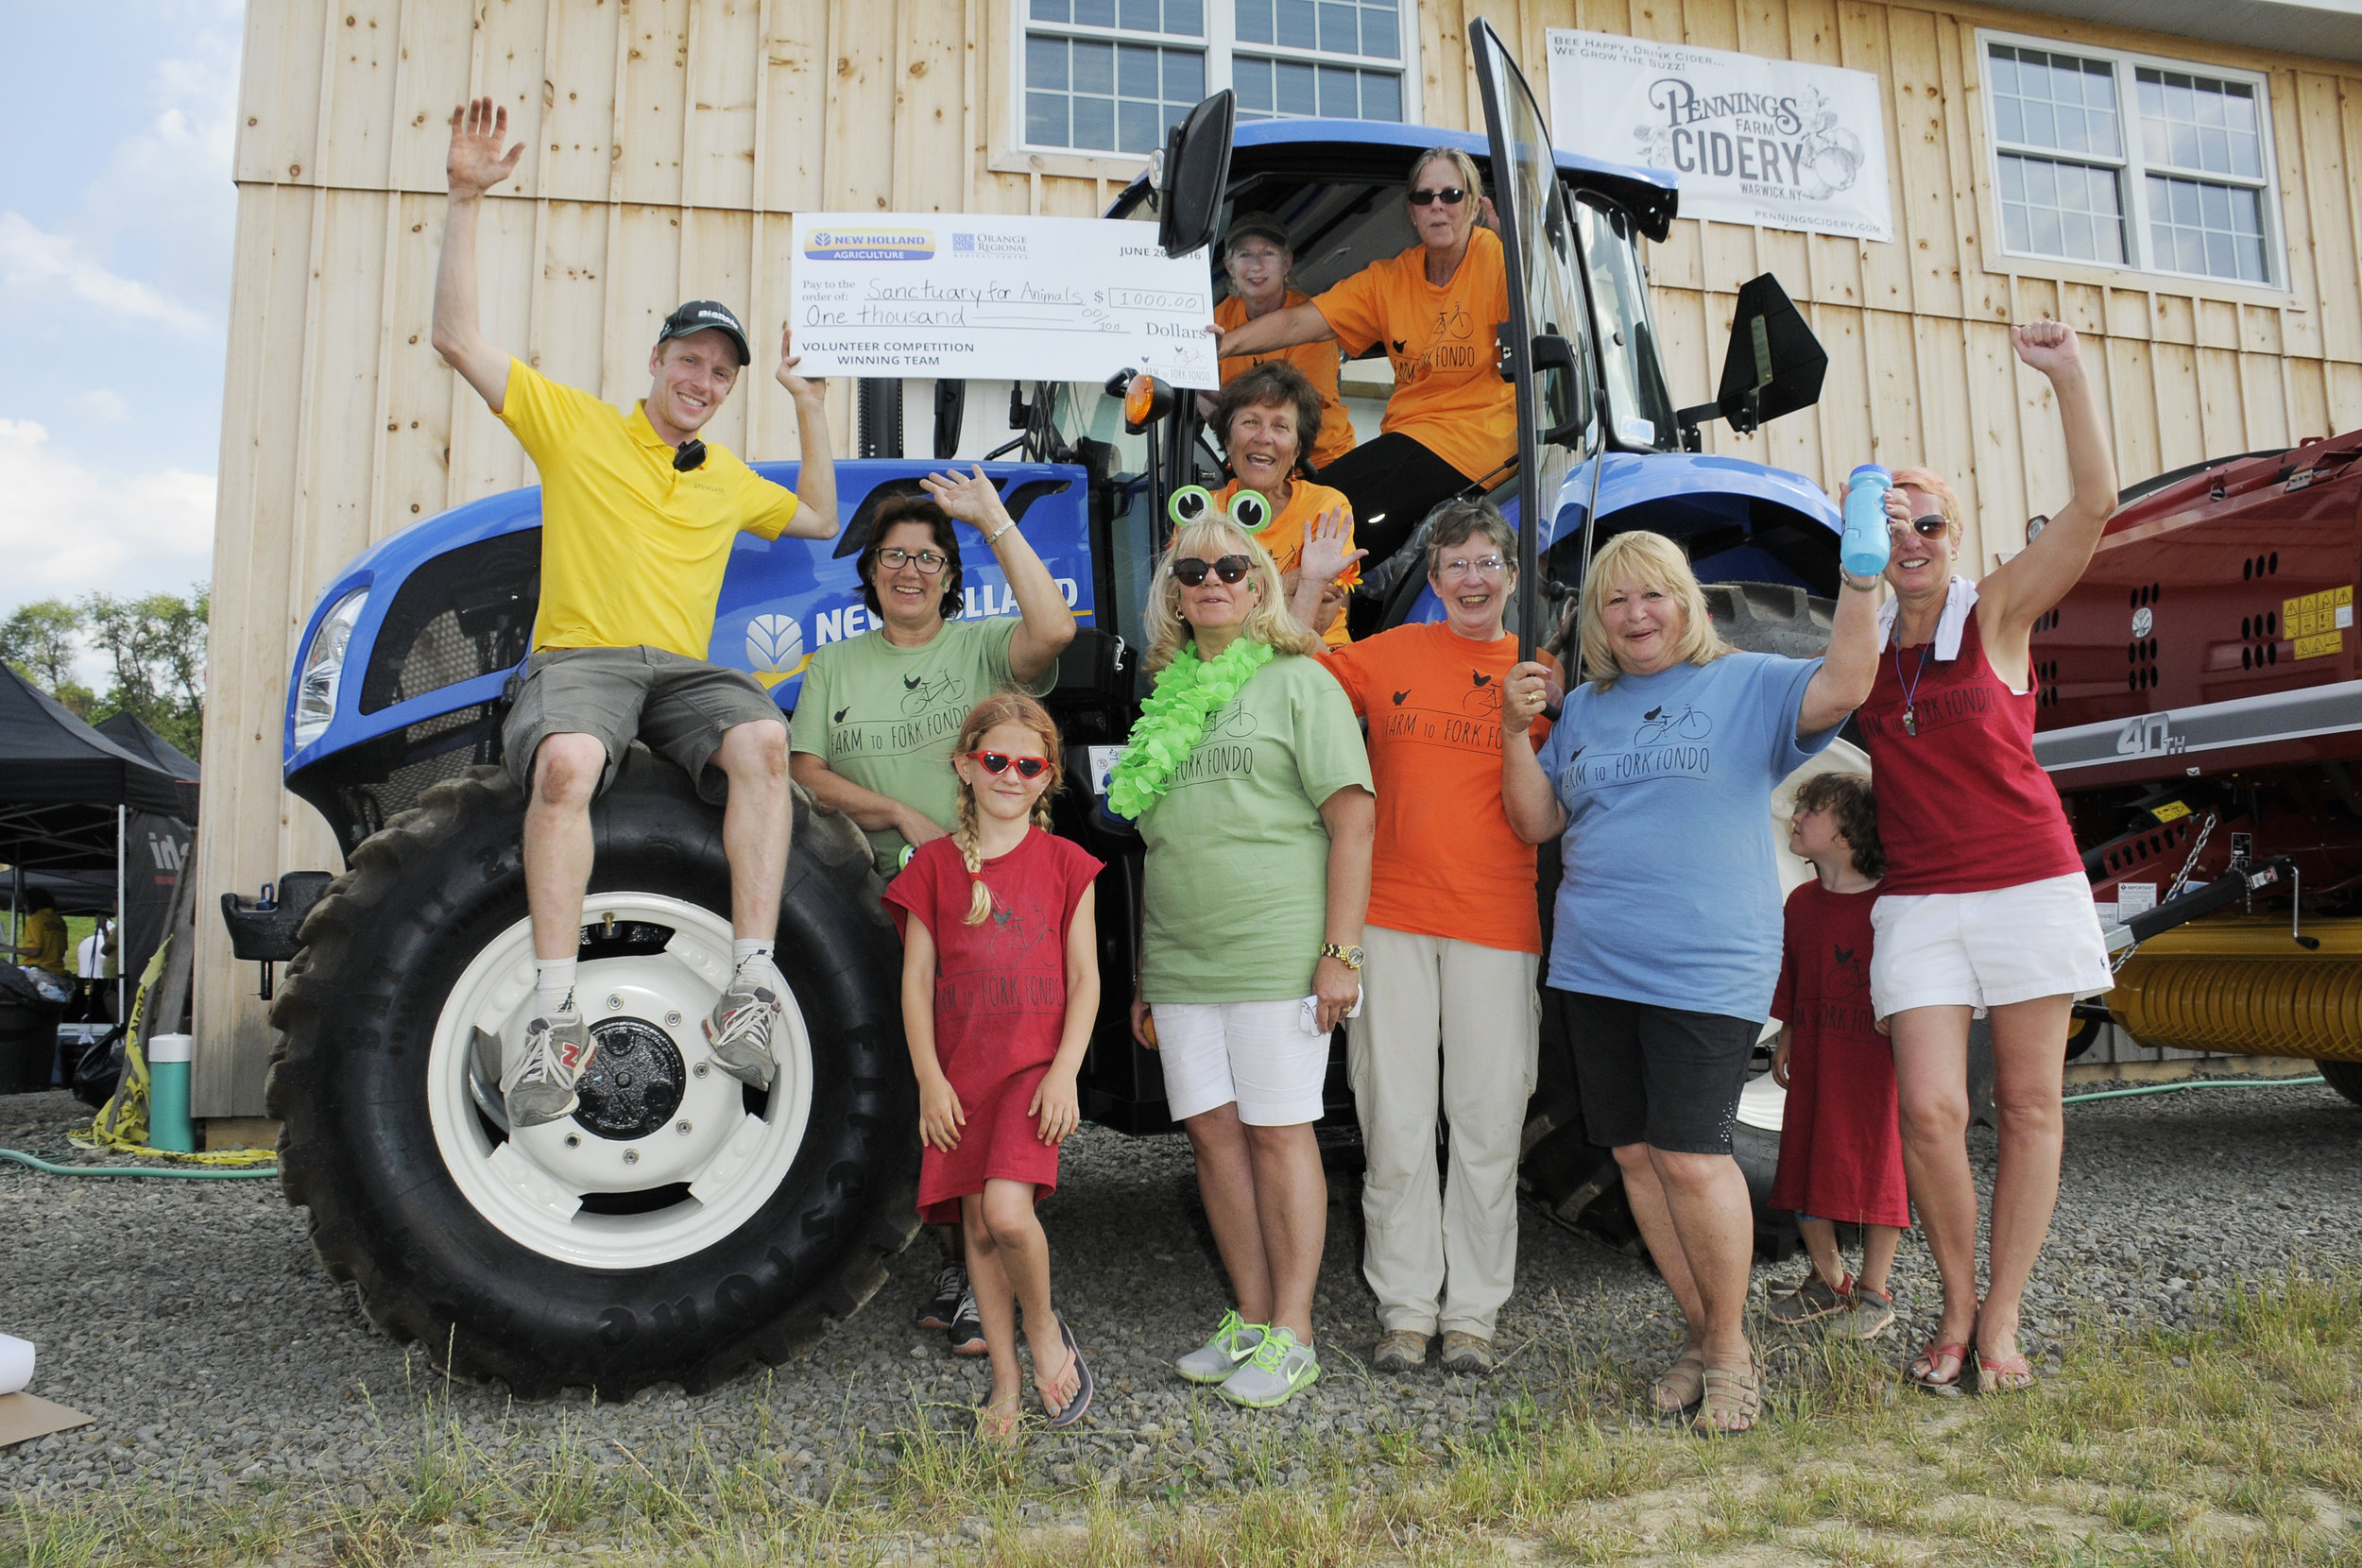 The Farm to Fork Fondo Volunteer Competition benefits local organizations